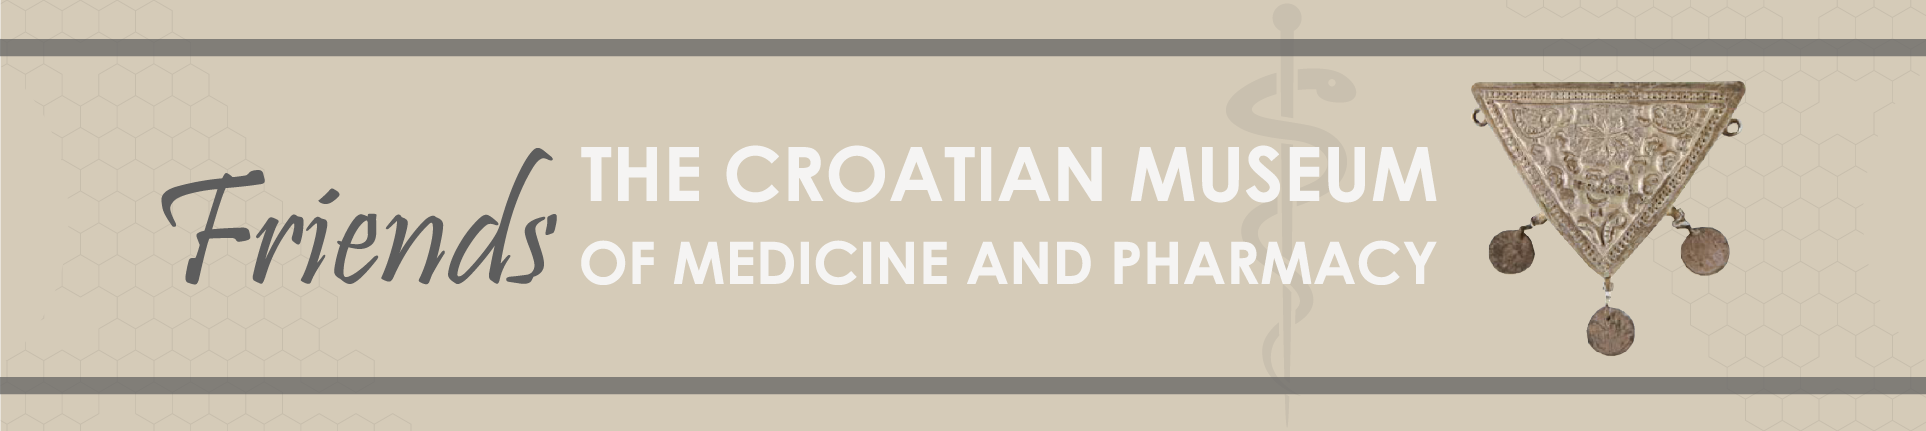 The Croatian Museum of Medicine and Pharmacy - Friends